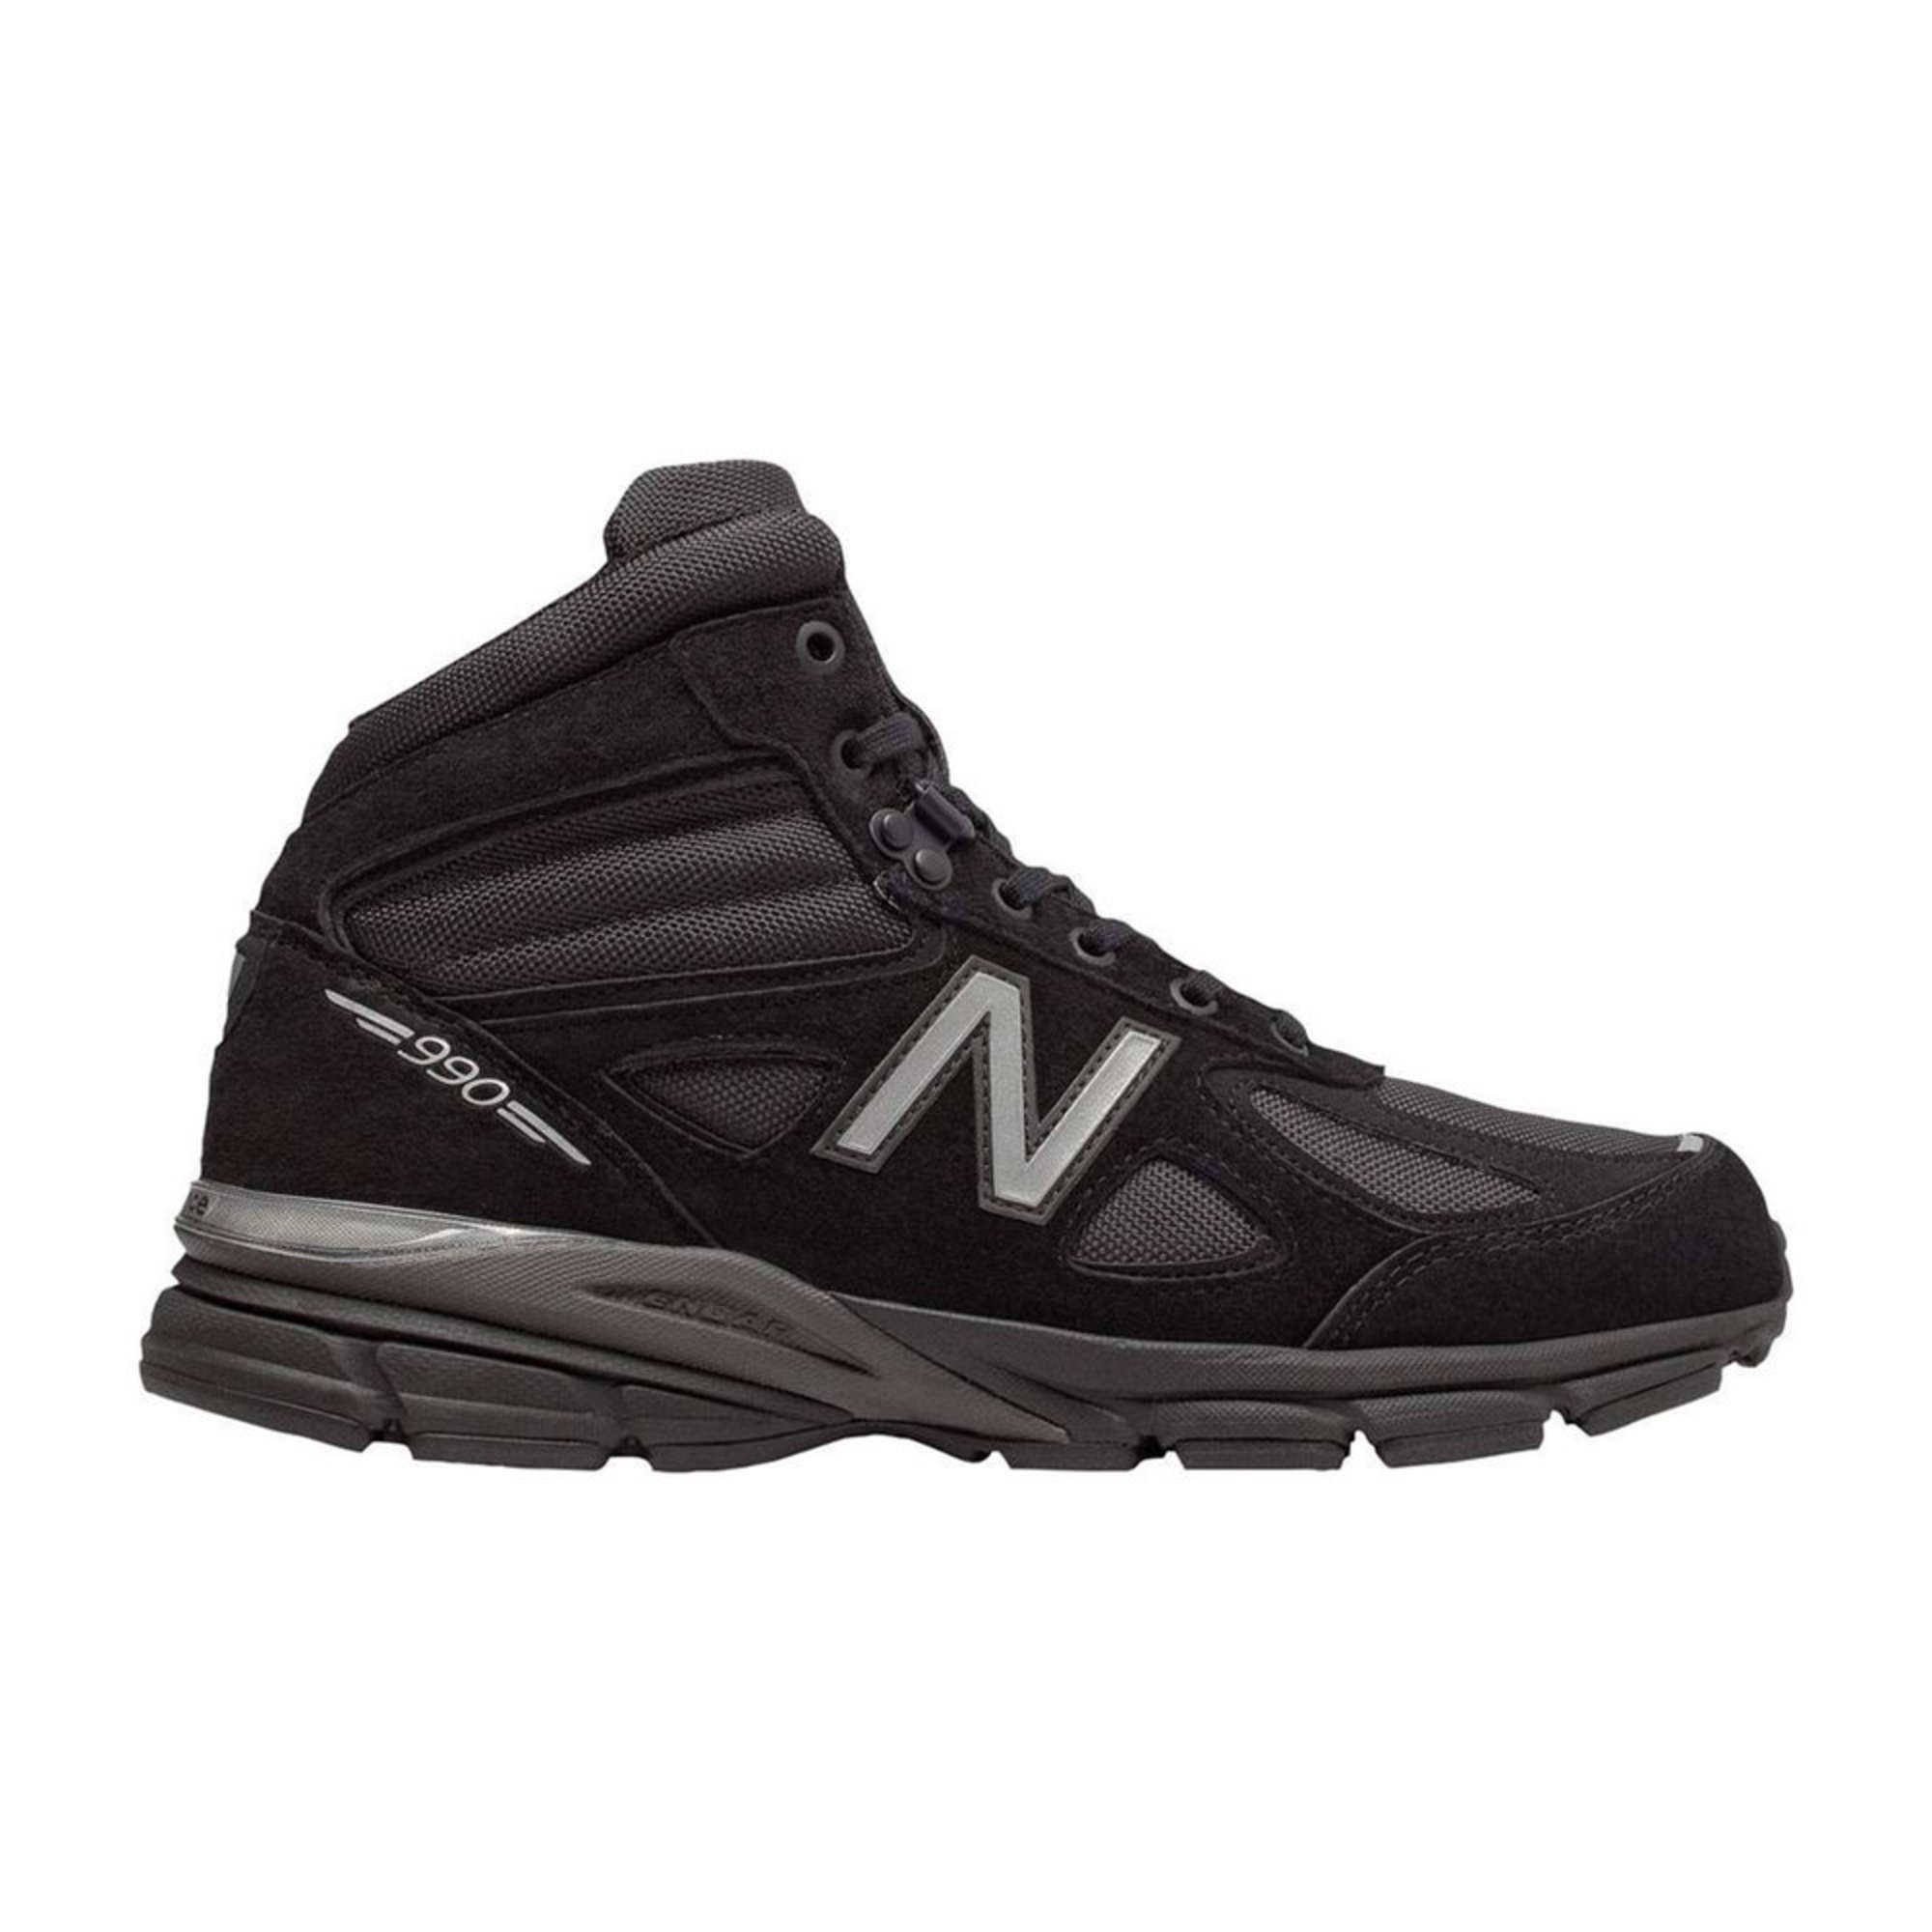 sports shoes 92322 26b36 New Balance Men's 990v4 Mid Running Shoe | Men's Running ...